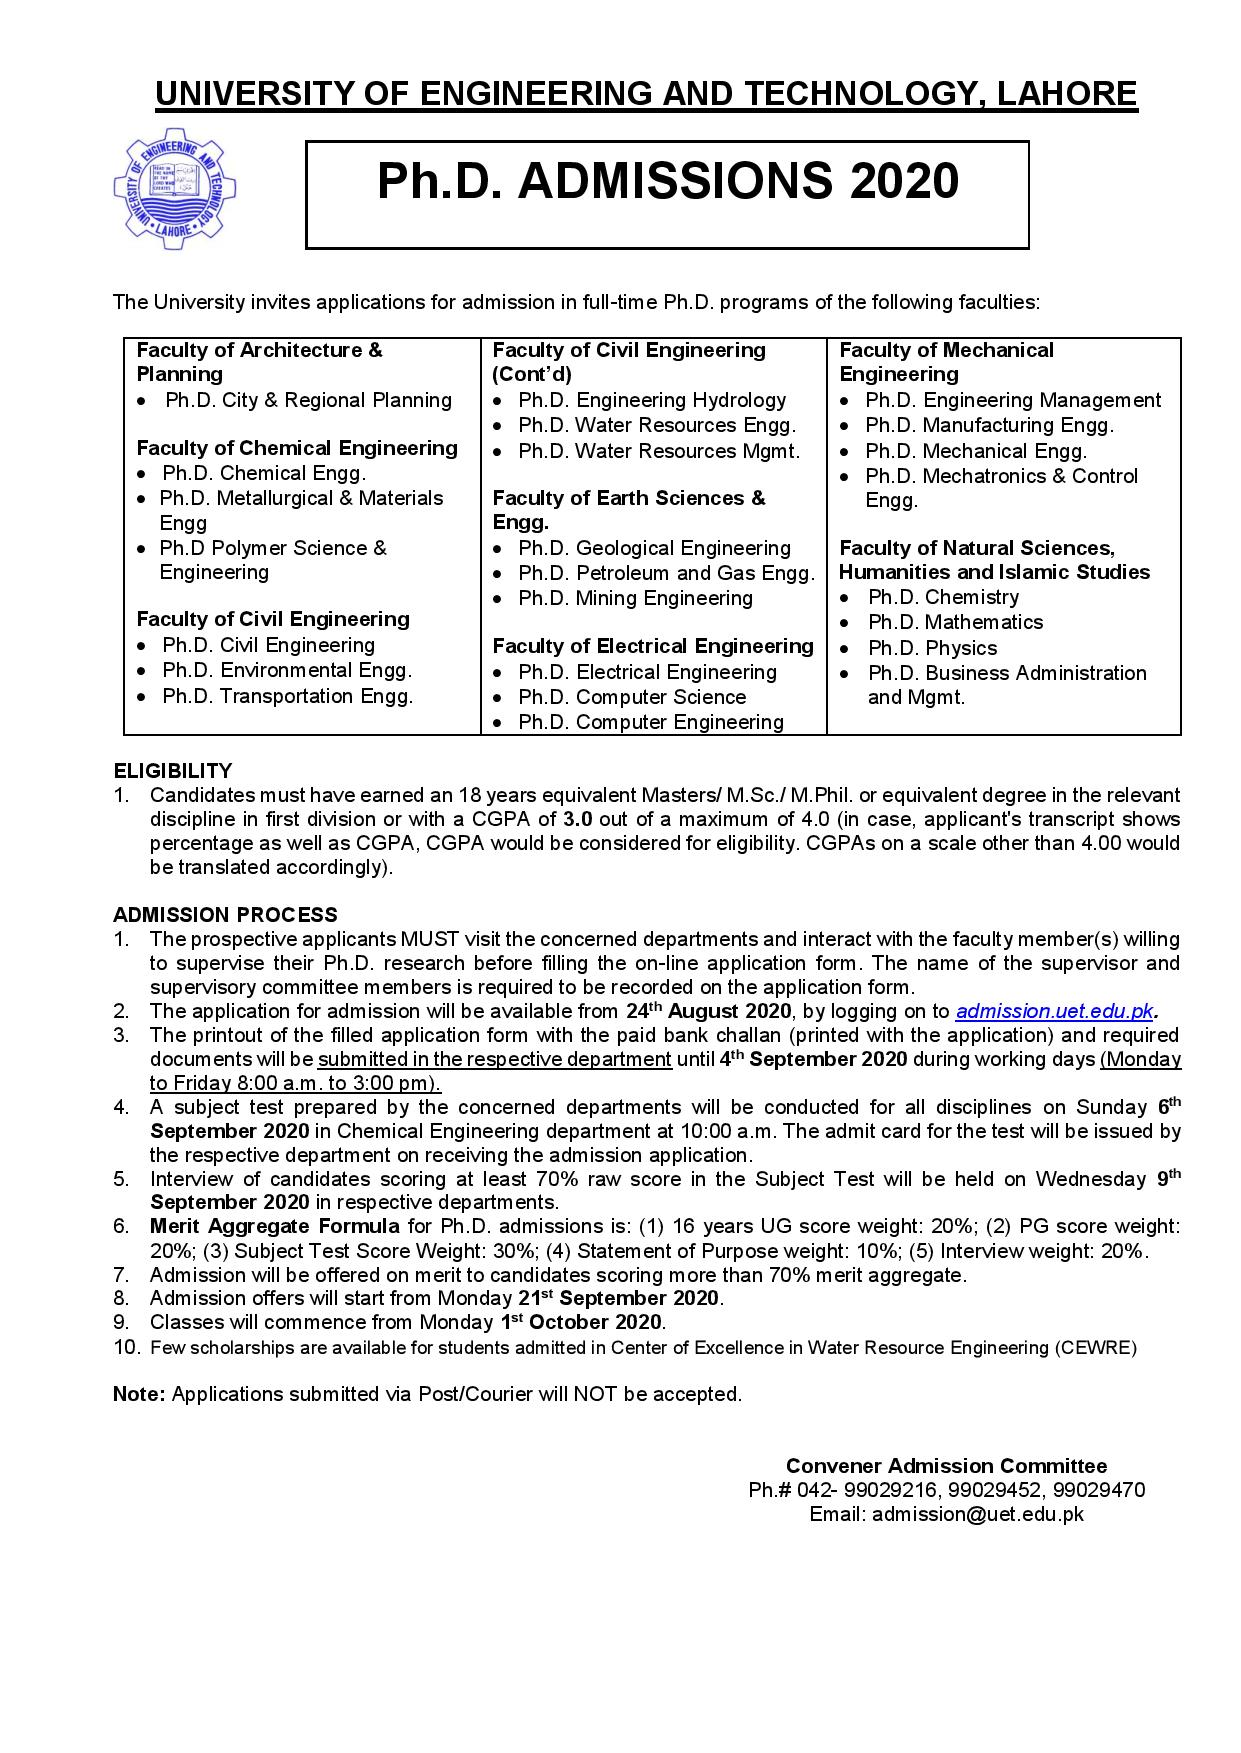 University Of Engineering & Technology Lahore Admissions PhD